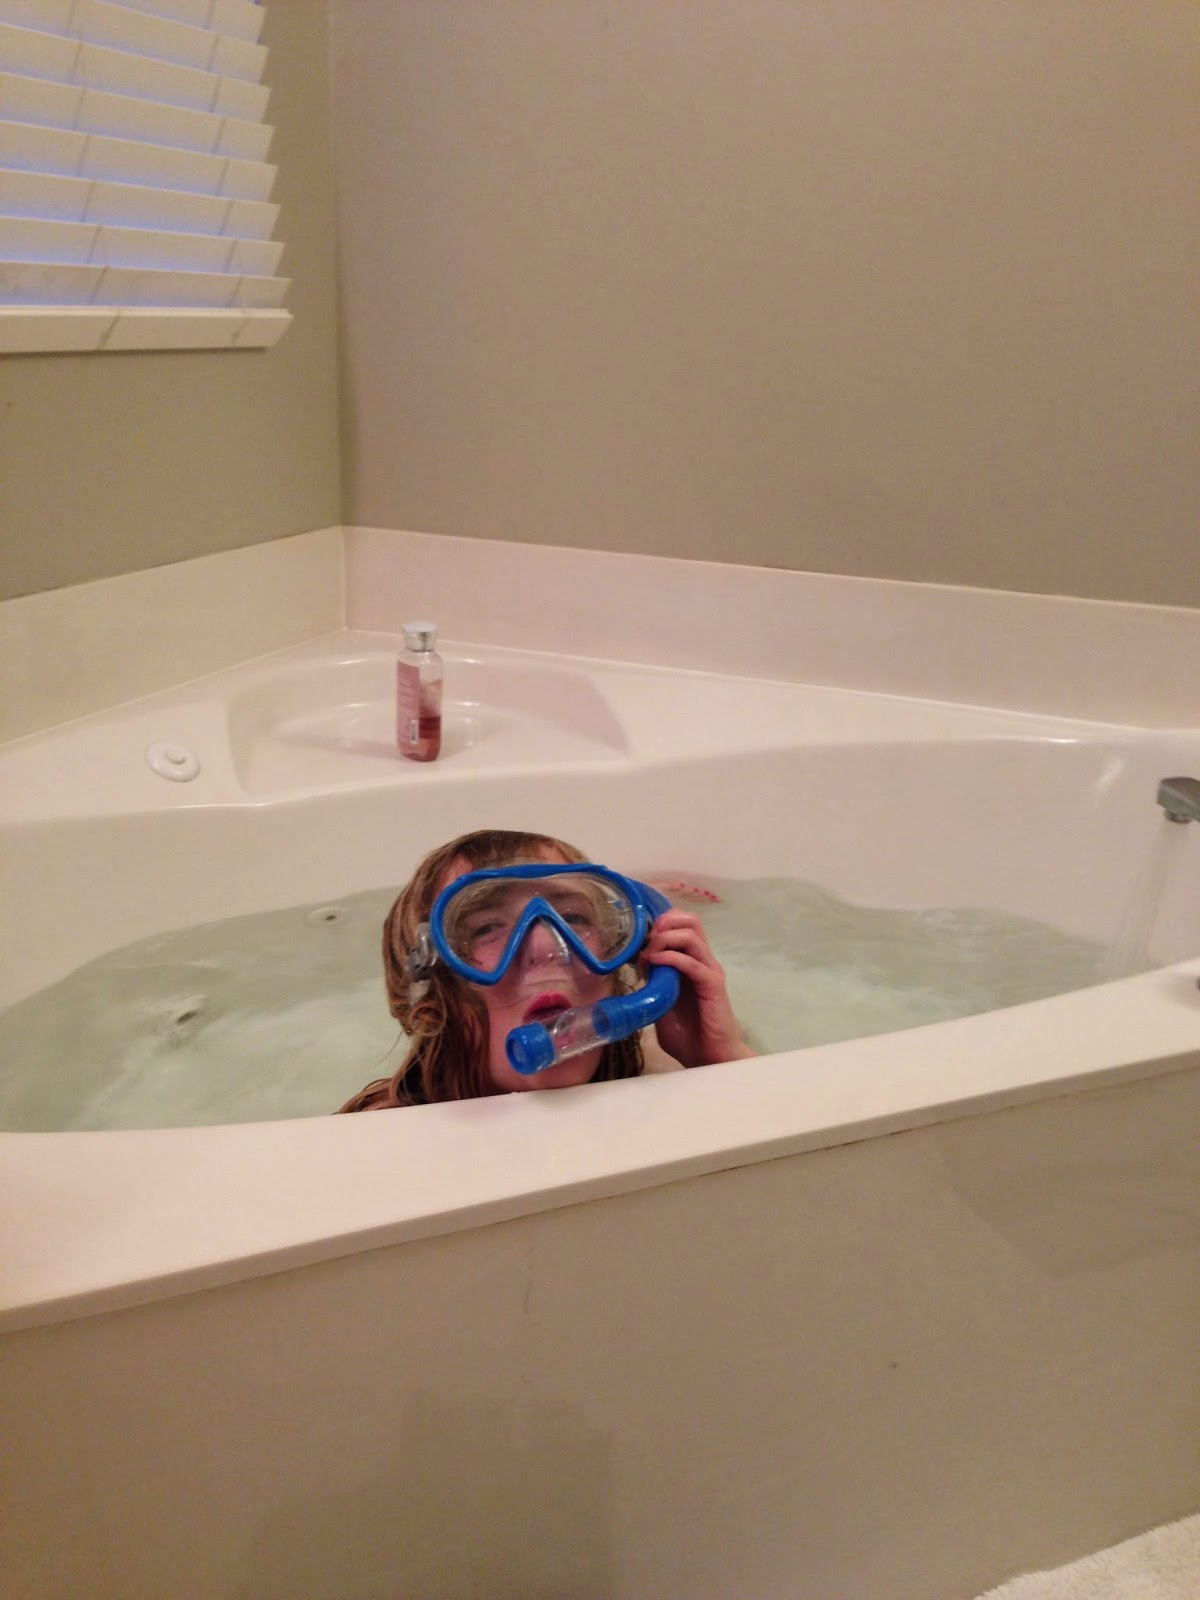 The Nevins: Snorkeling in the Tub!